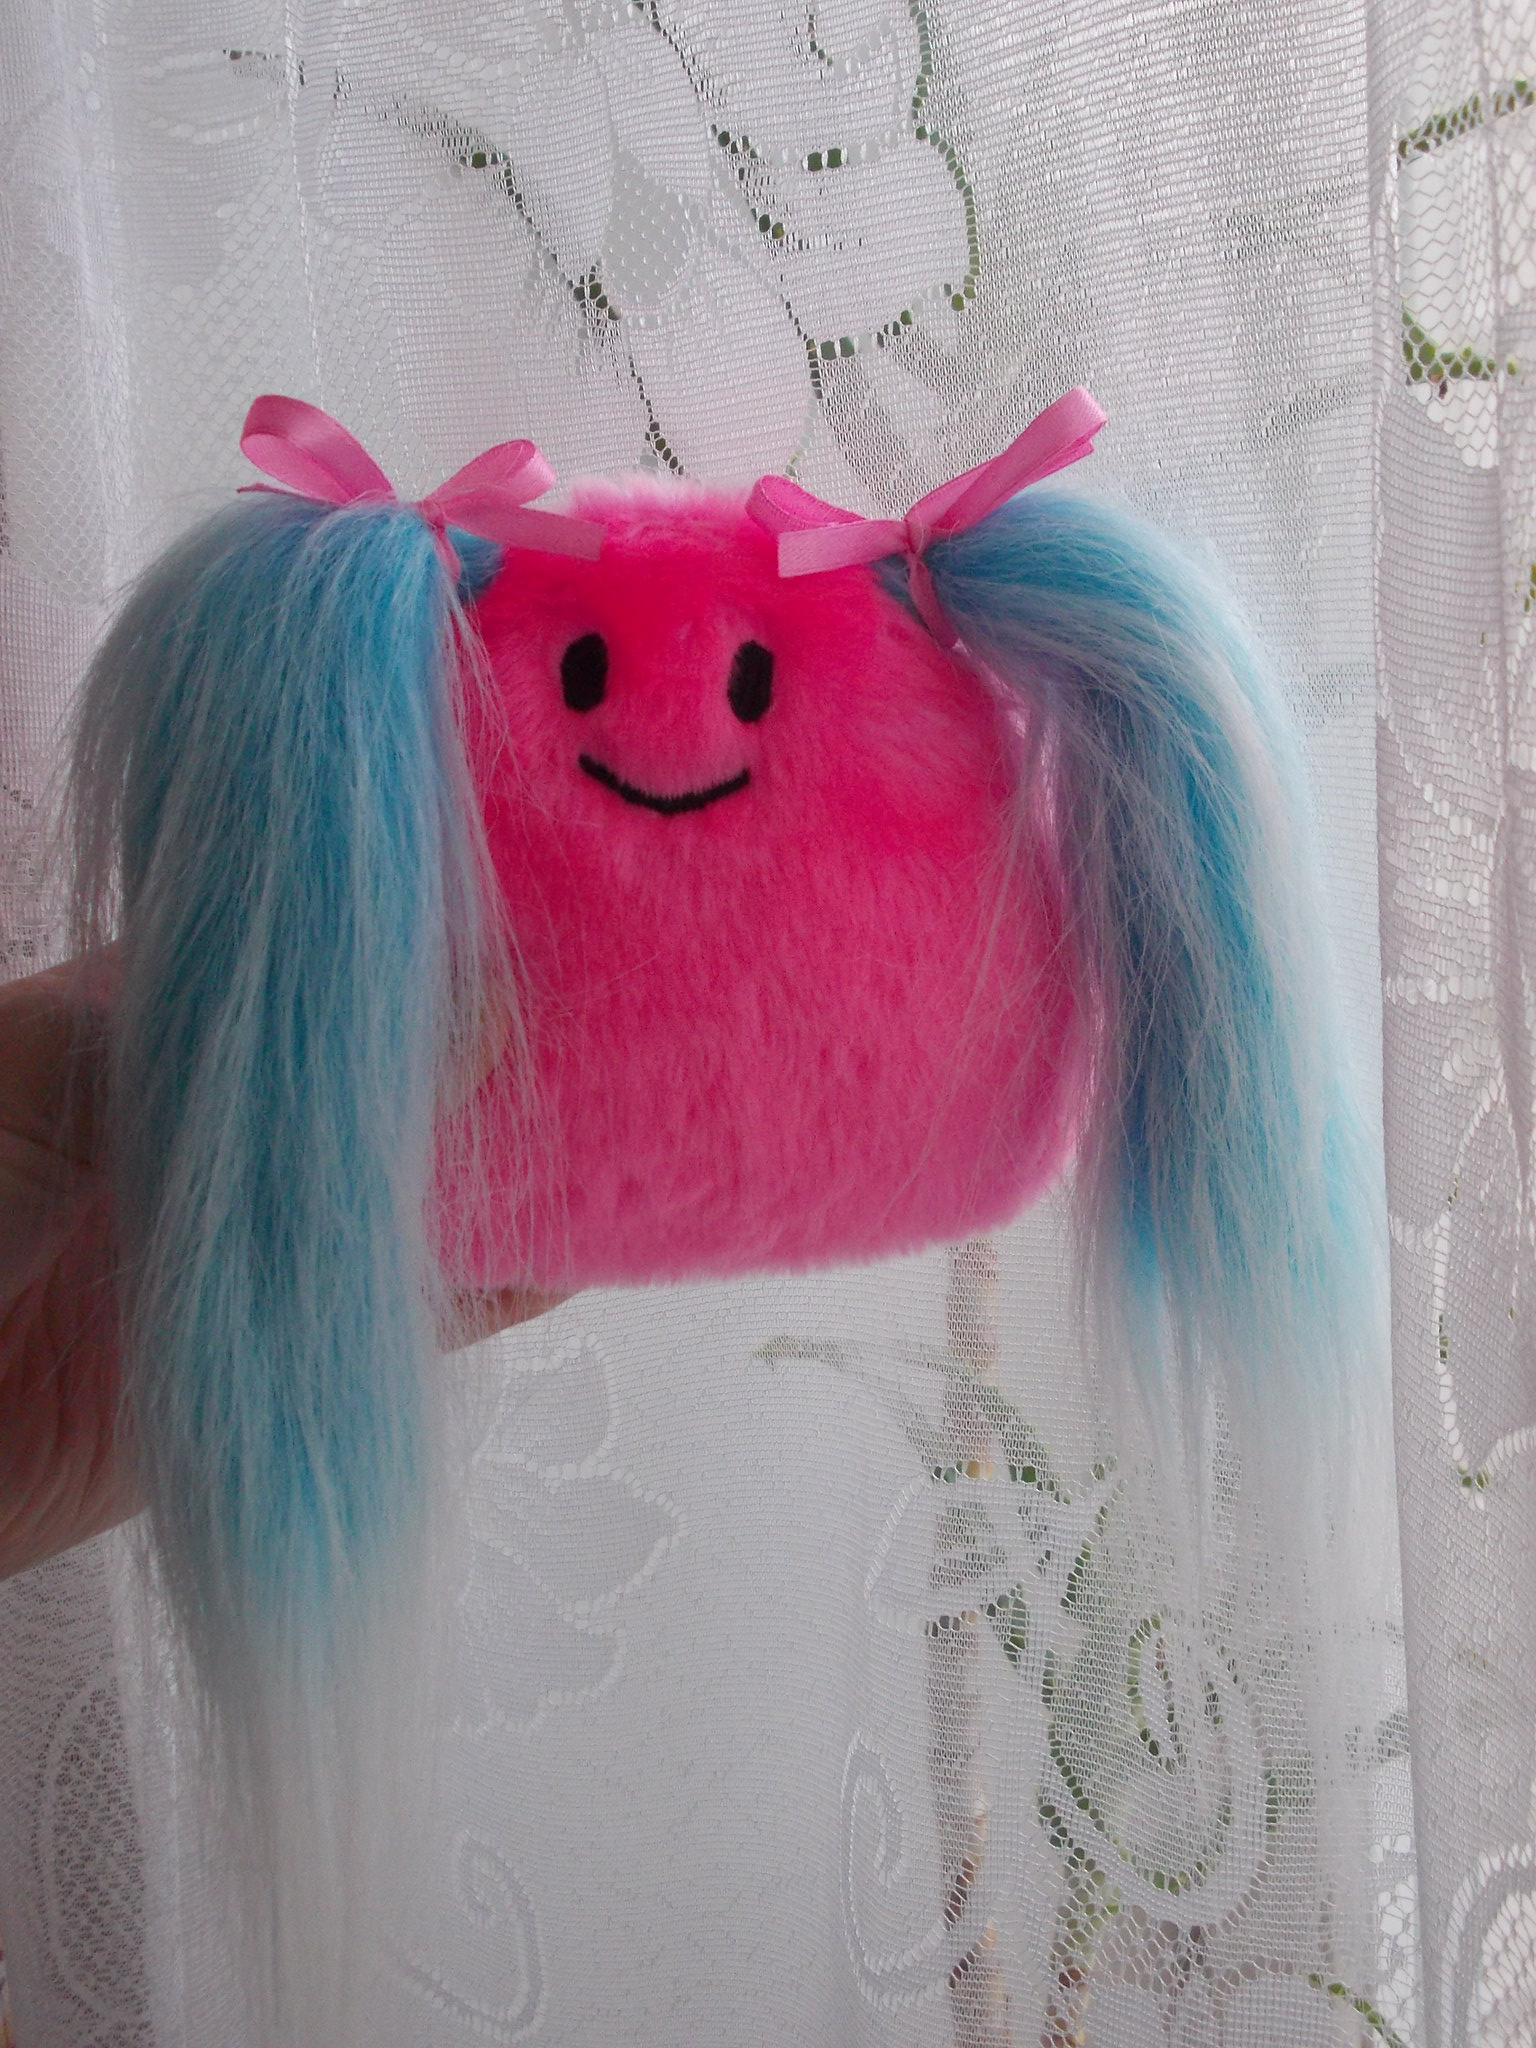 Cute toy, cute monster, kawaii monster, kawaii princess, pink blue toy, blue hair toy, blue hair princess, warm fuzzies 46